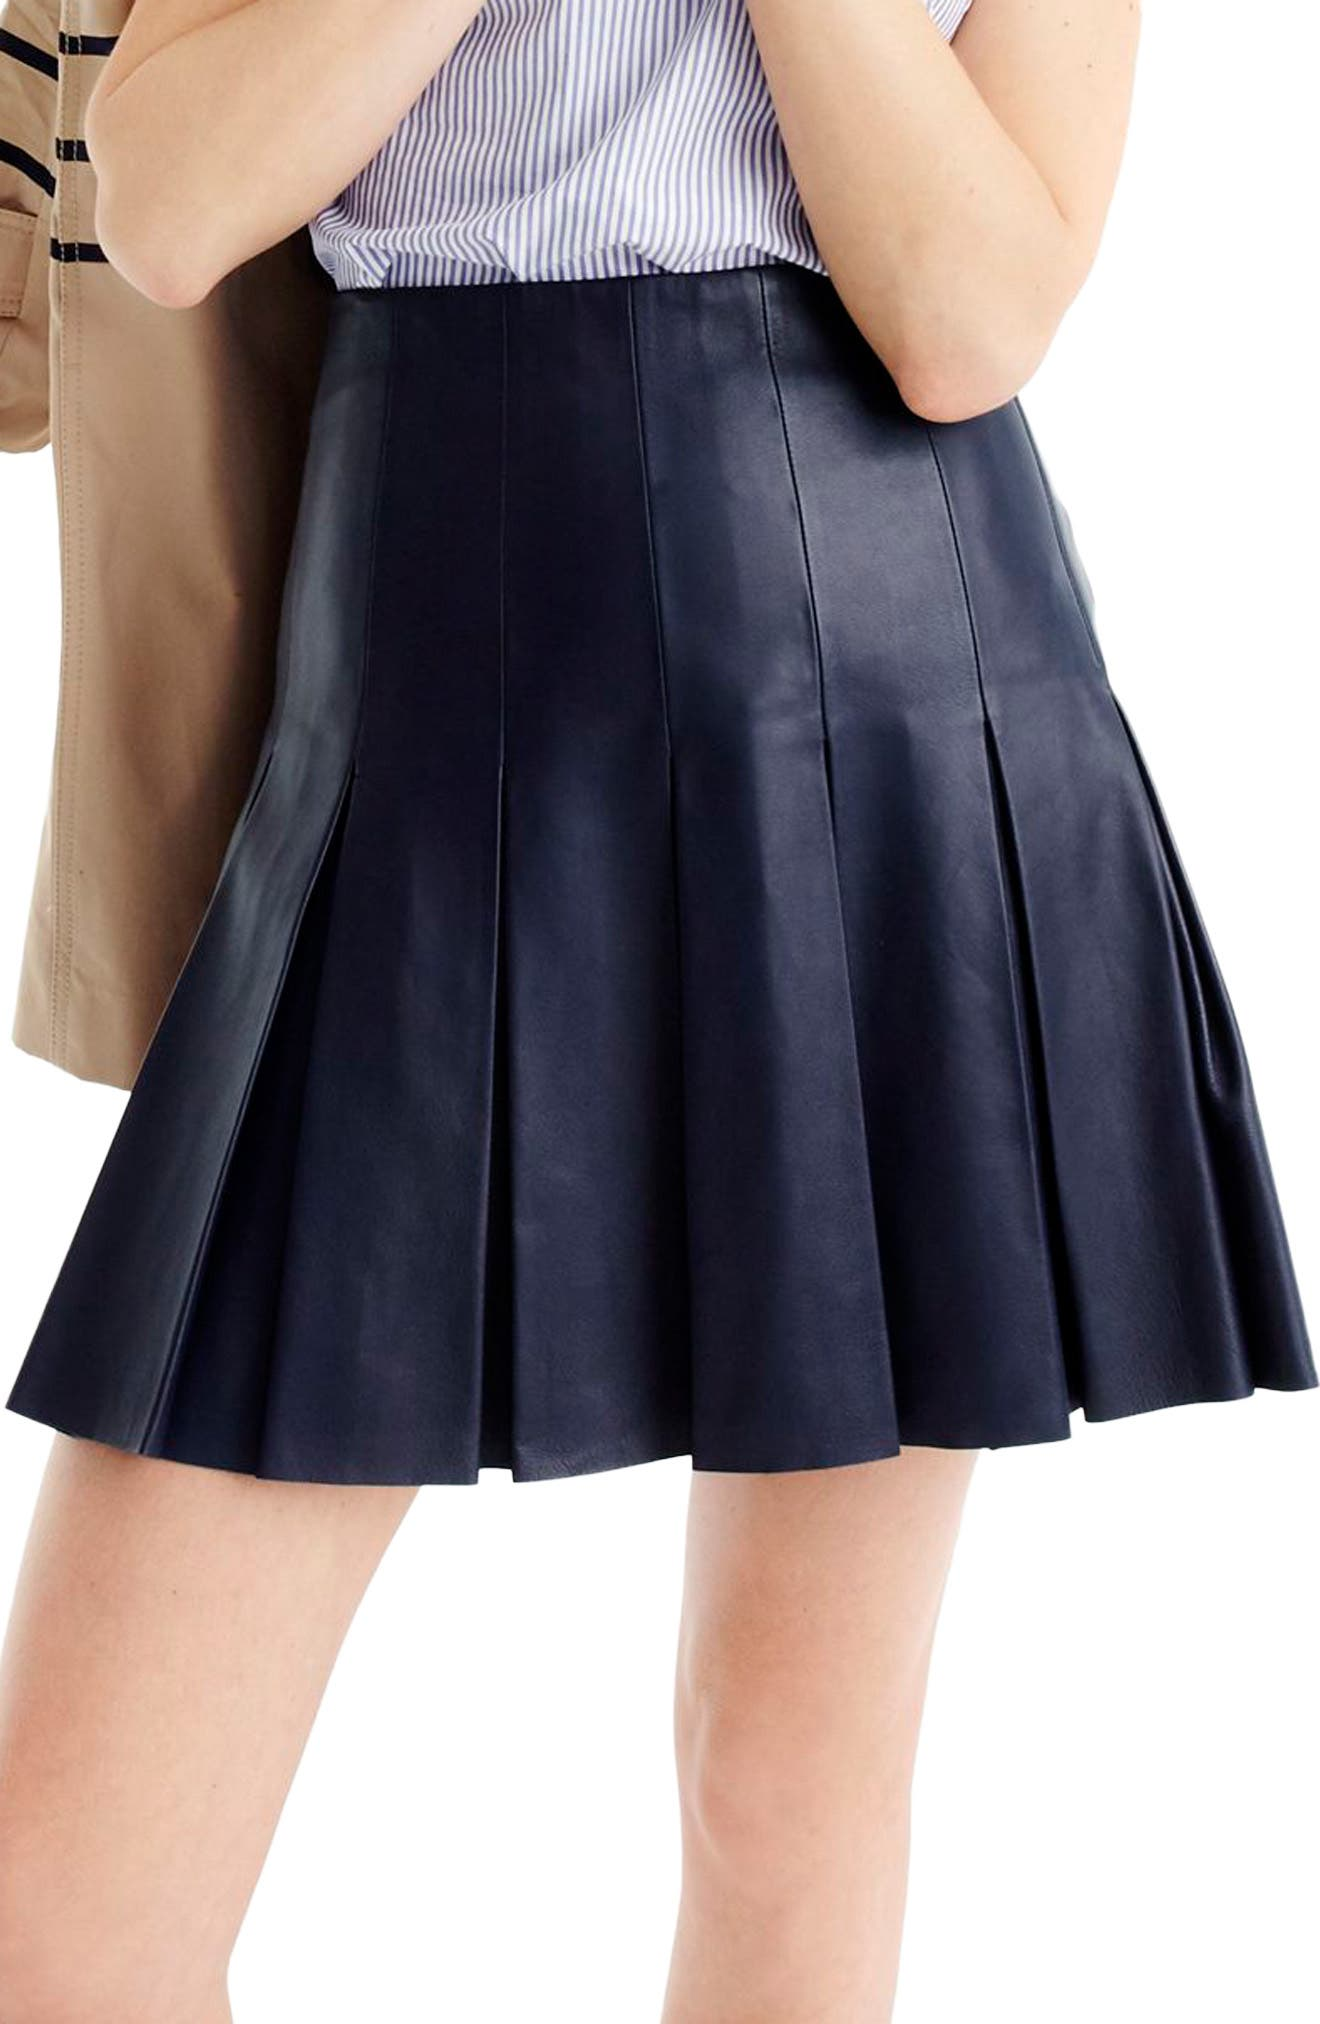 Alternate Image 1 Selected - J.Crew Collection Drop Pleat Leather Skirt